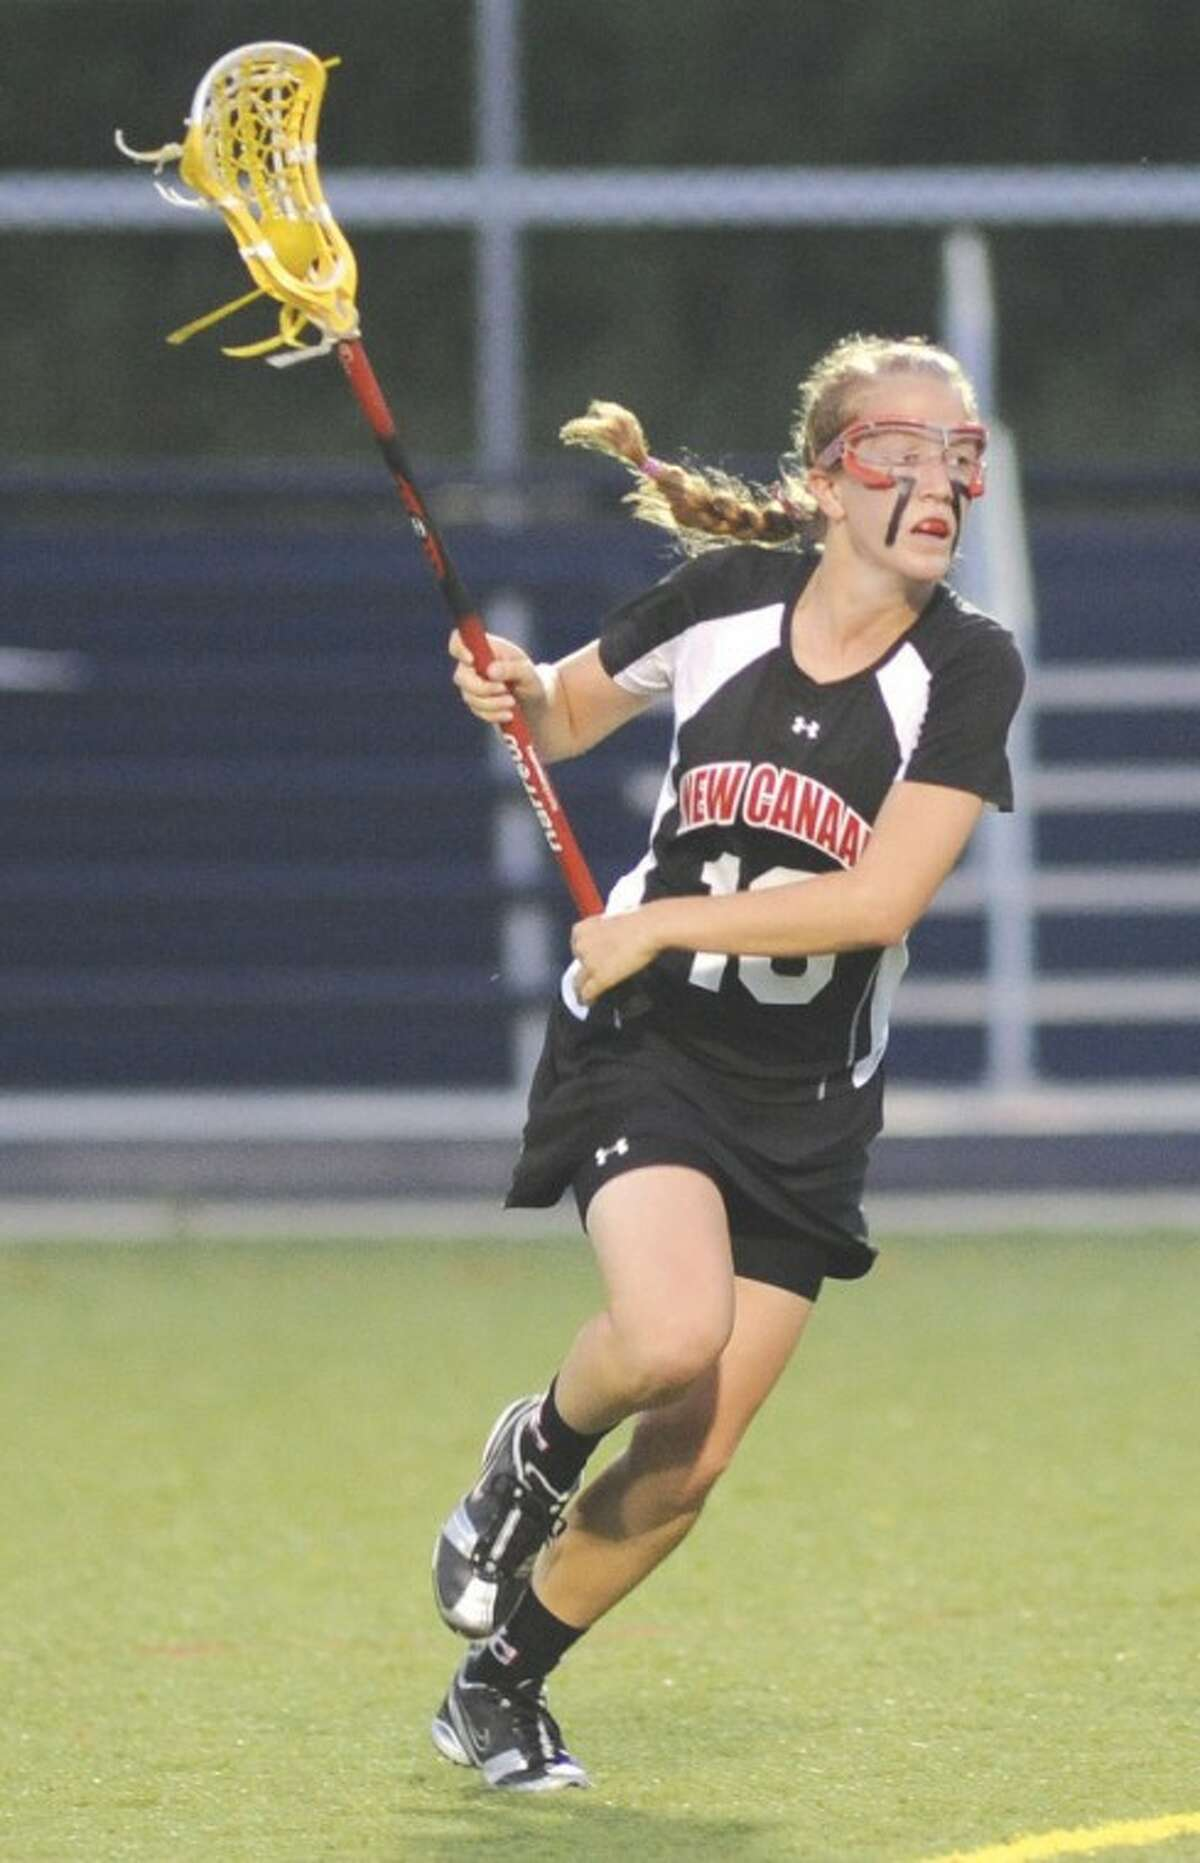 Hour photo/John Nash Sarah Mannelly of New Canaan scored 82 goals and set up 47 others this season. But she is also a stalwart defender, a two-time All-American, Connecticut's player of the year, and The Hour's All-Area girls lacrosse MVP